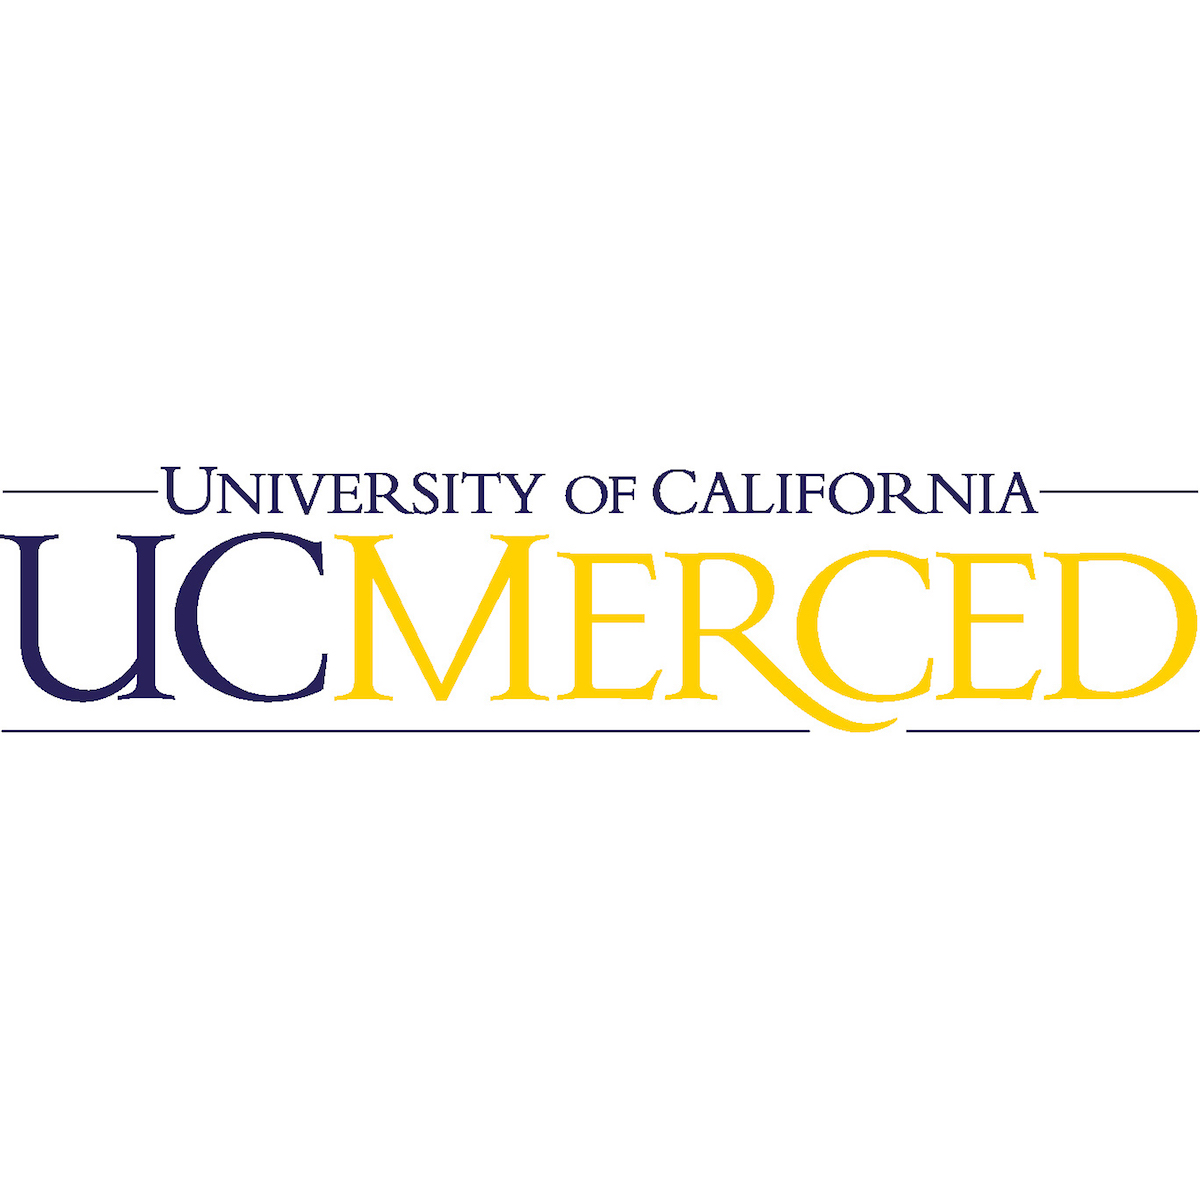 community service includes advising UC Merced's School of Engineering